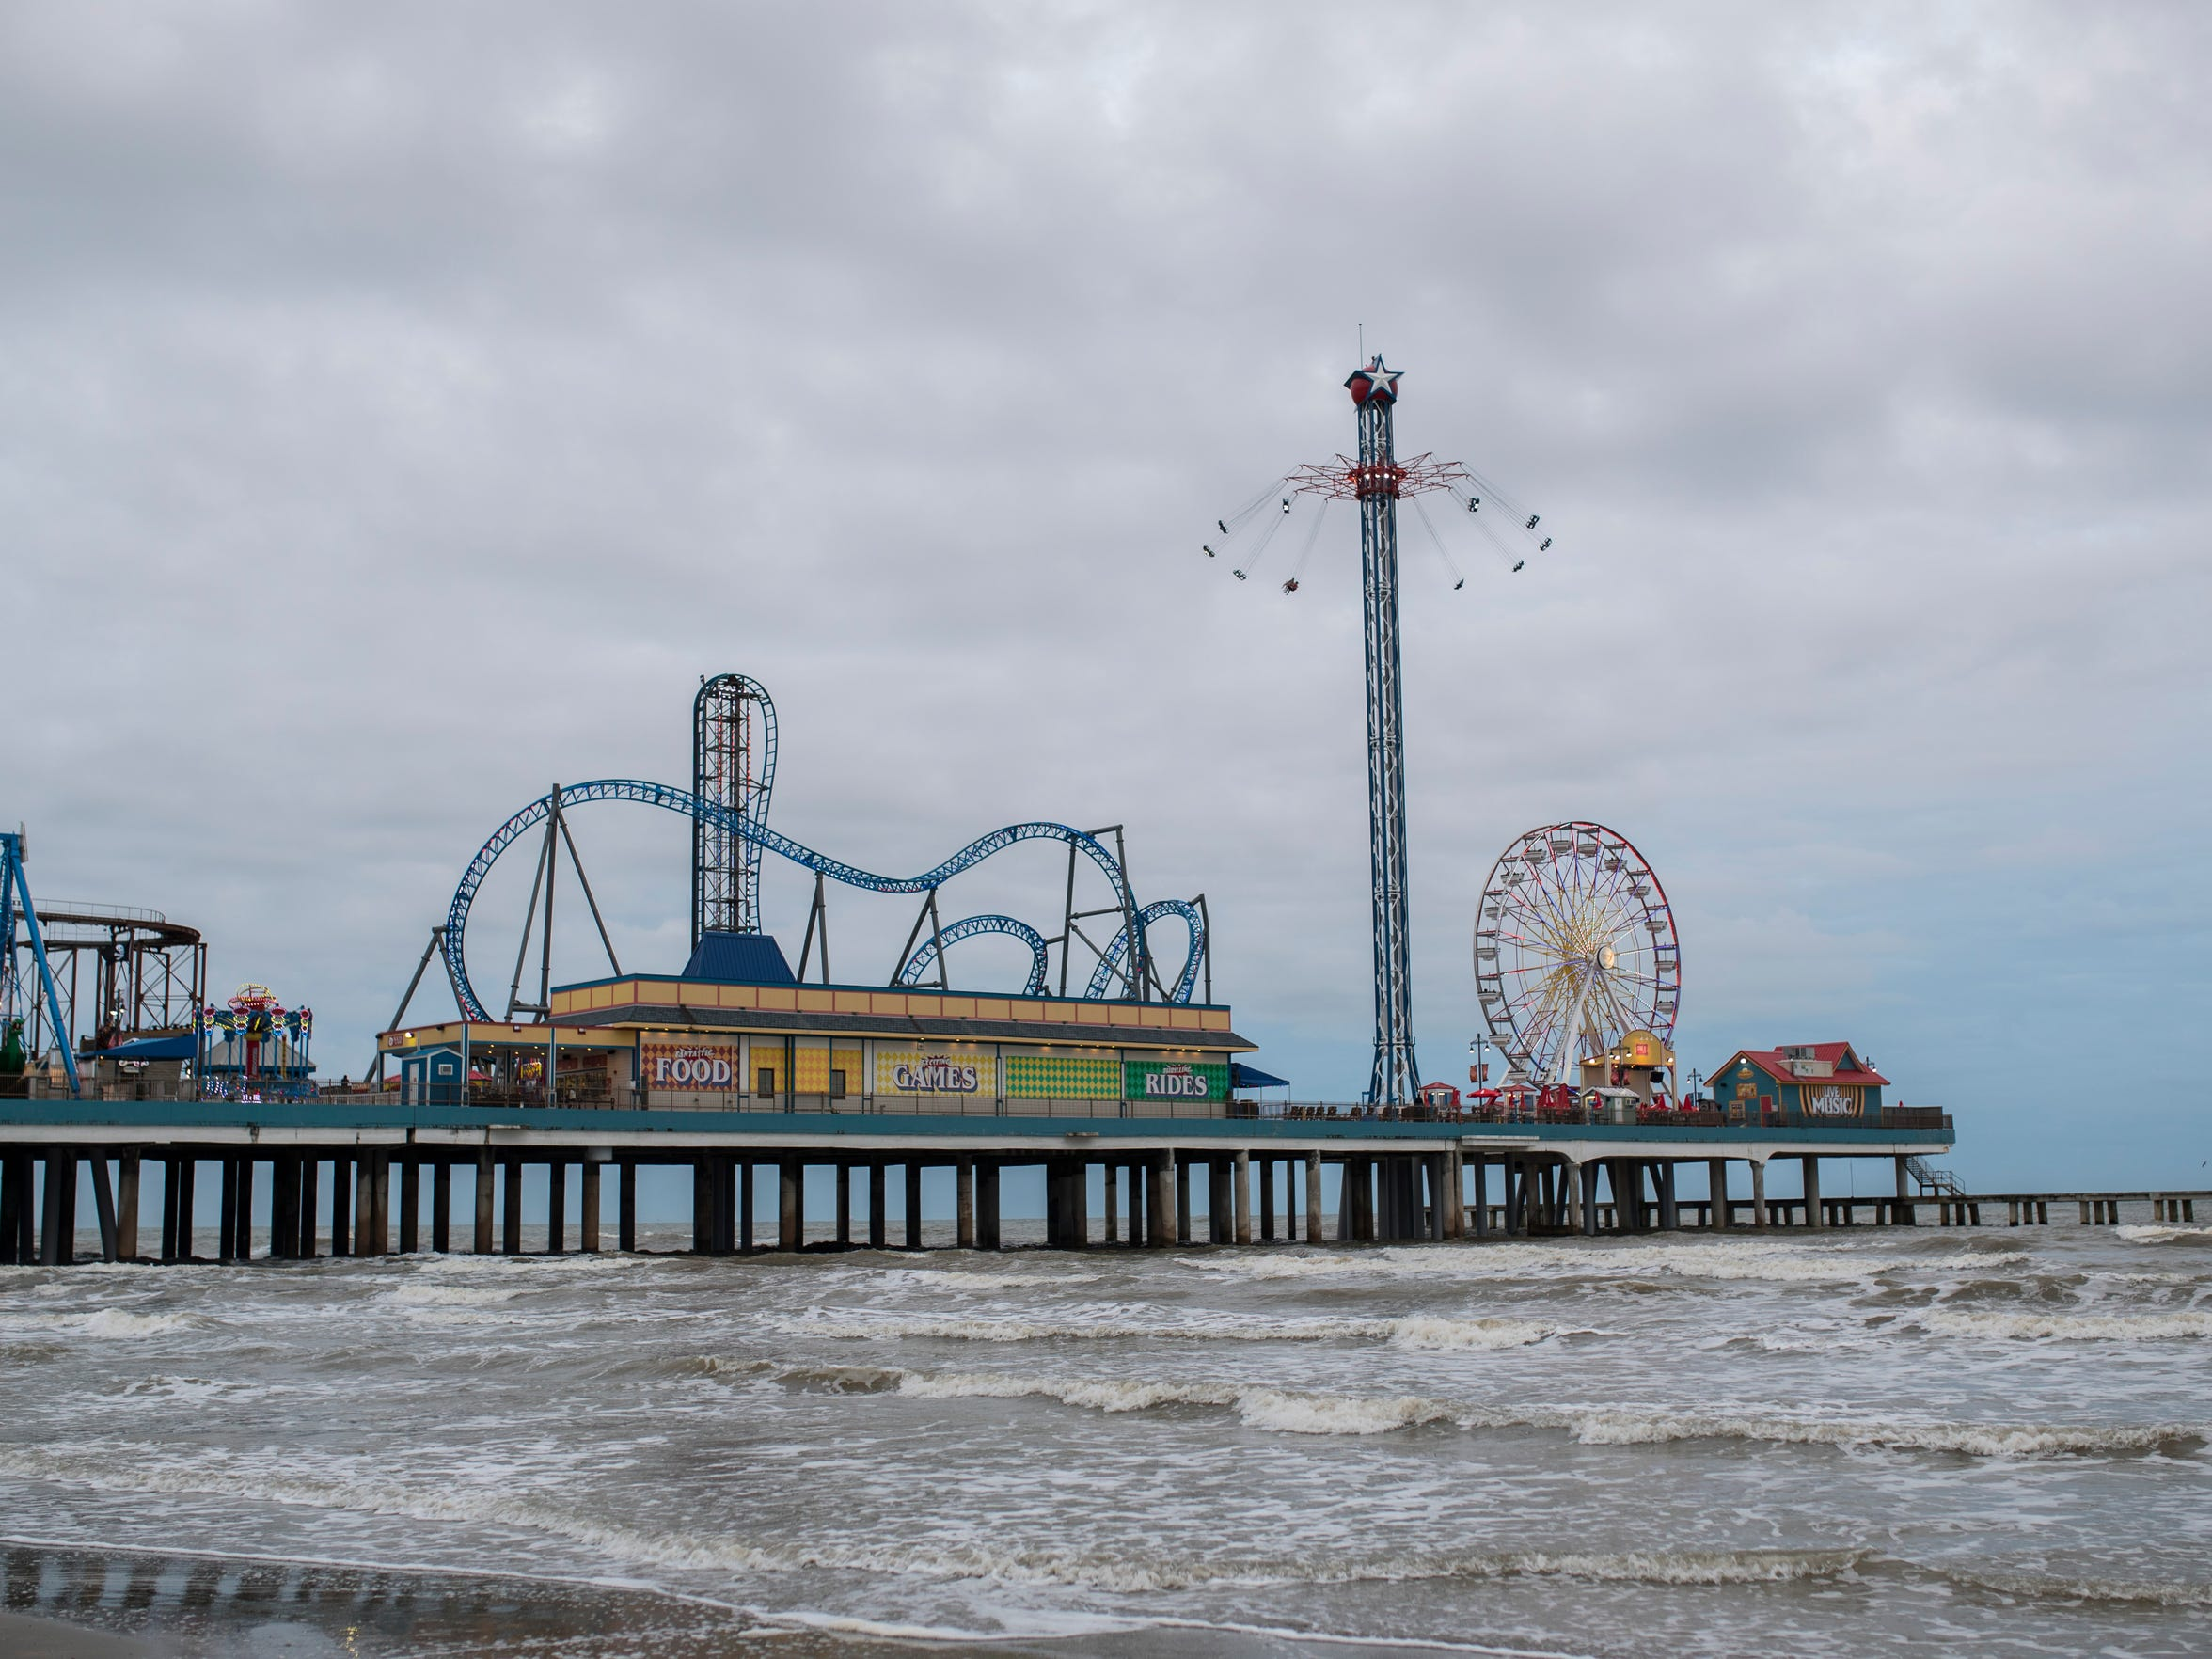 Galveston Island Historic Pleasure Pier on Saturday, March. 10, 2018 on on Galveston Island. The pier is a new addition to the Galveston area that came after Hurricane Ike.